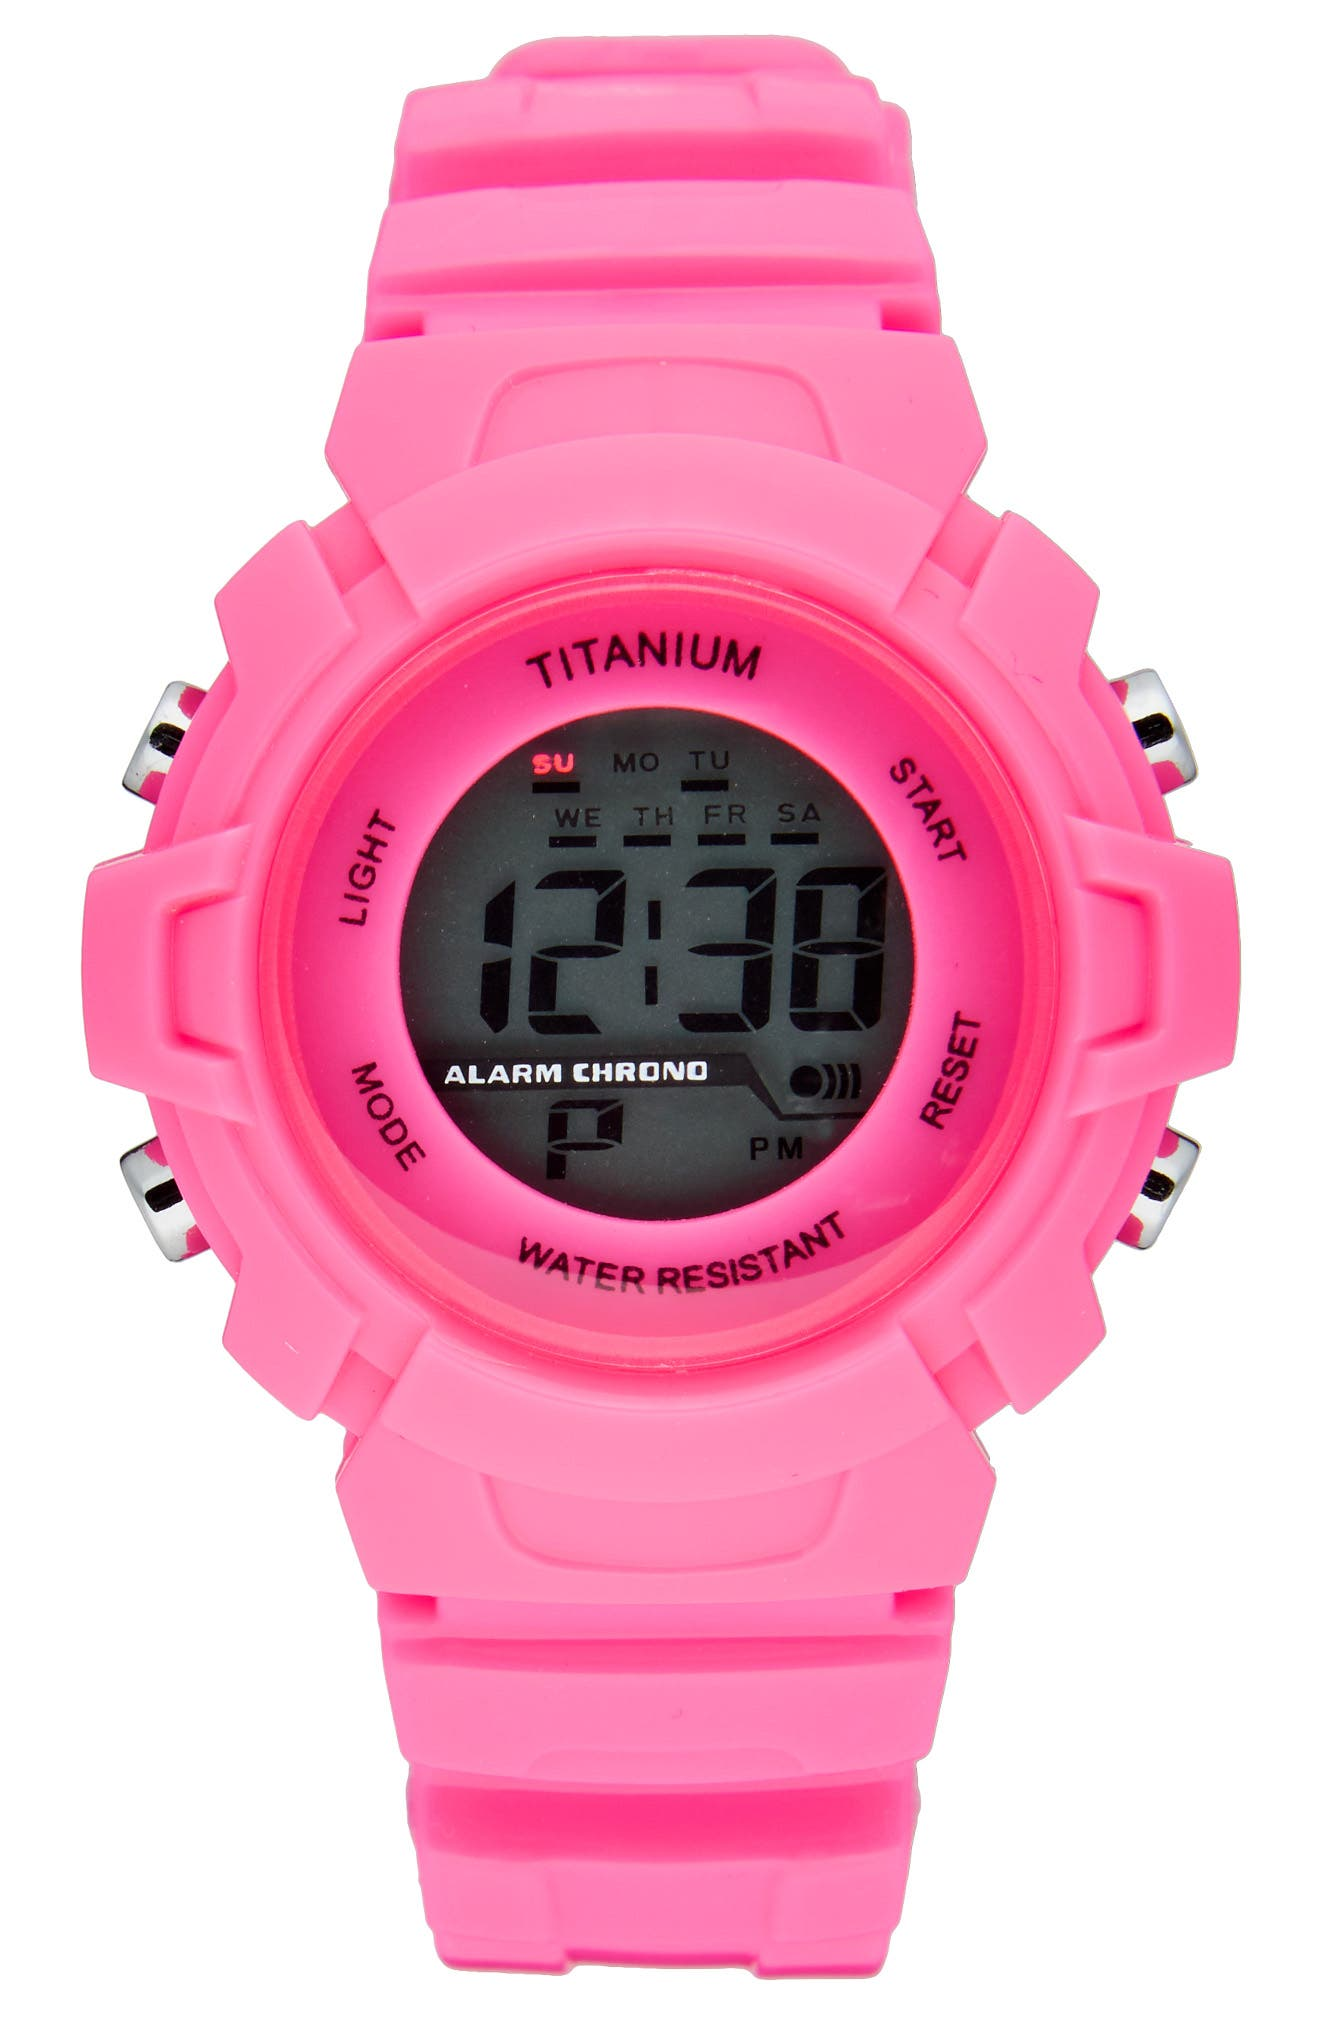 Titanium LCD Waterproof Sport Watch (Kids)